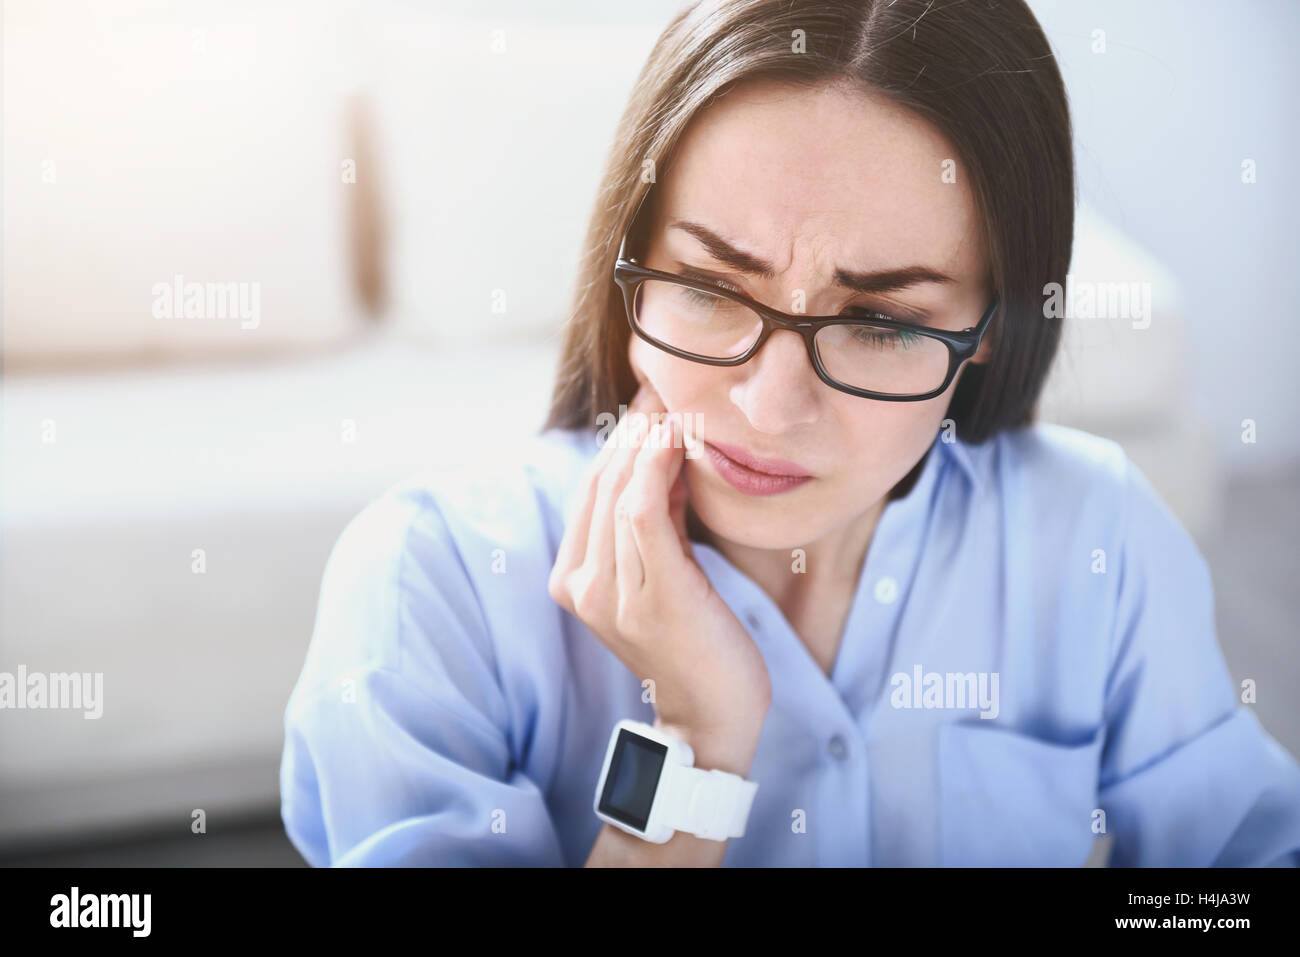 Tired young woman having toothache. - Stock Image